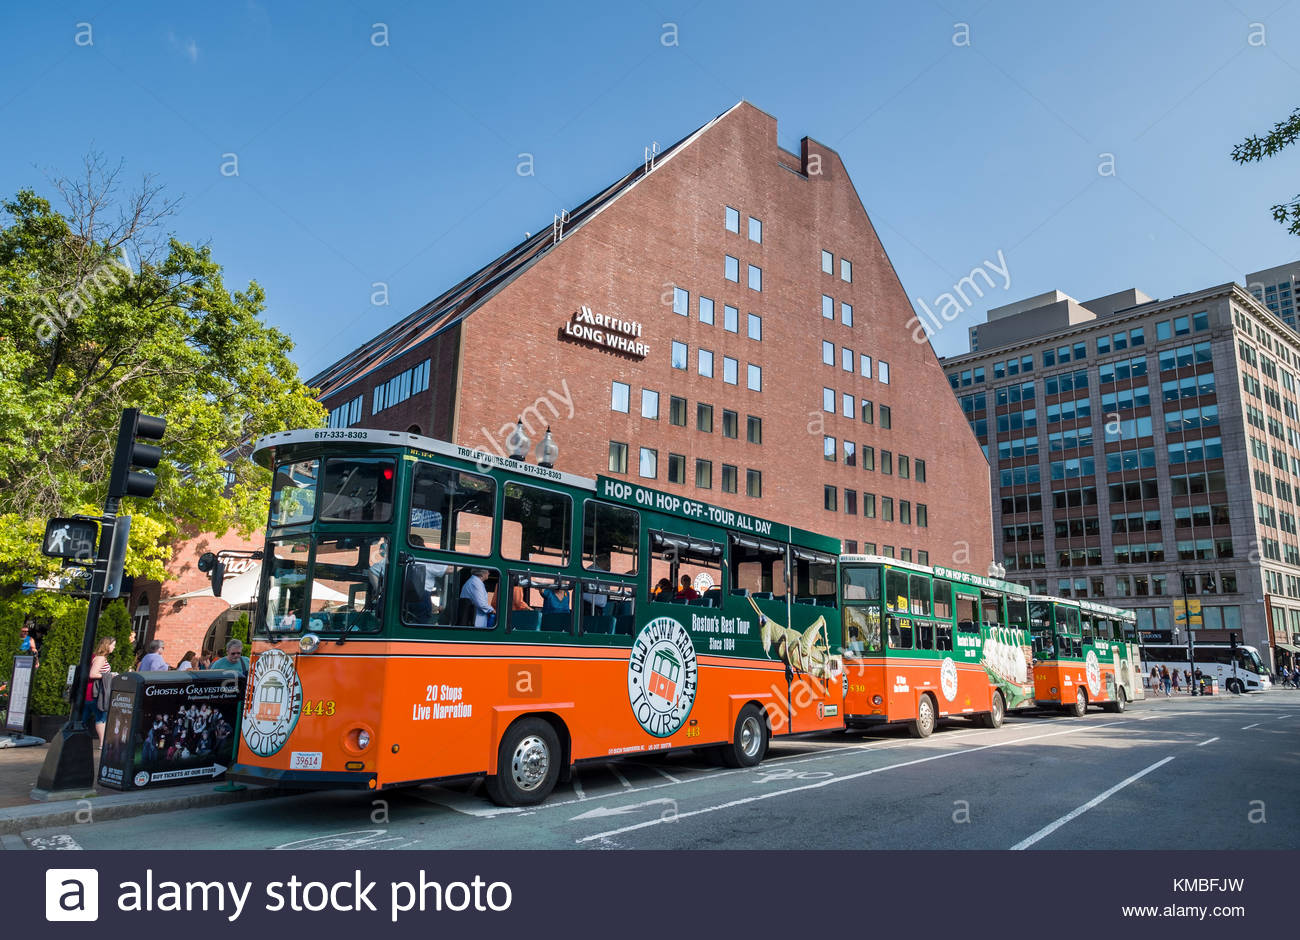 https://c8.alamy.com/comp/KMBFJW/old-town-trolley-tour-buses-parked-in-front-of-the-marriott-long-wharf-KMBFJW.jpg